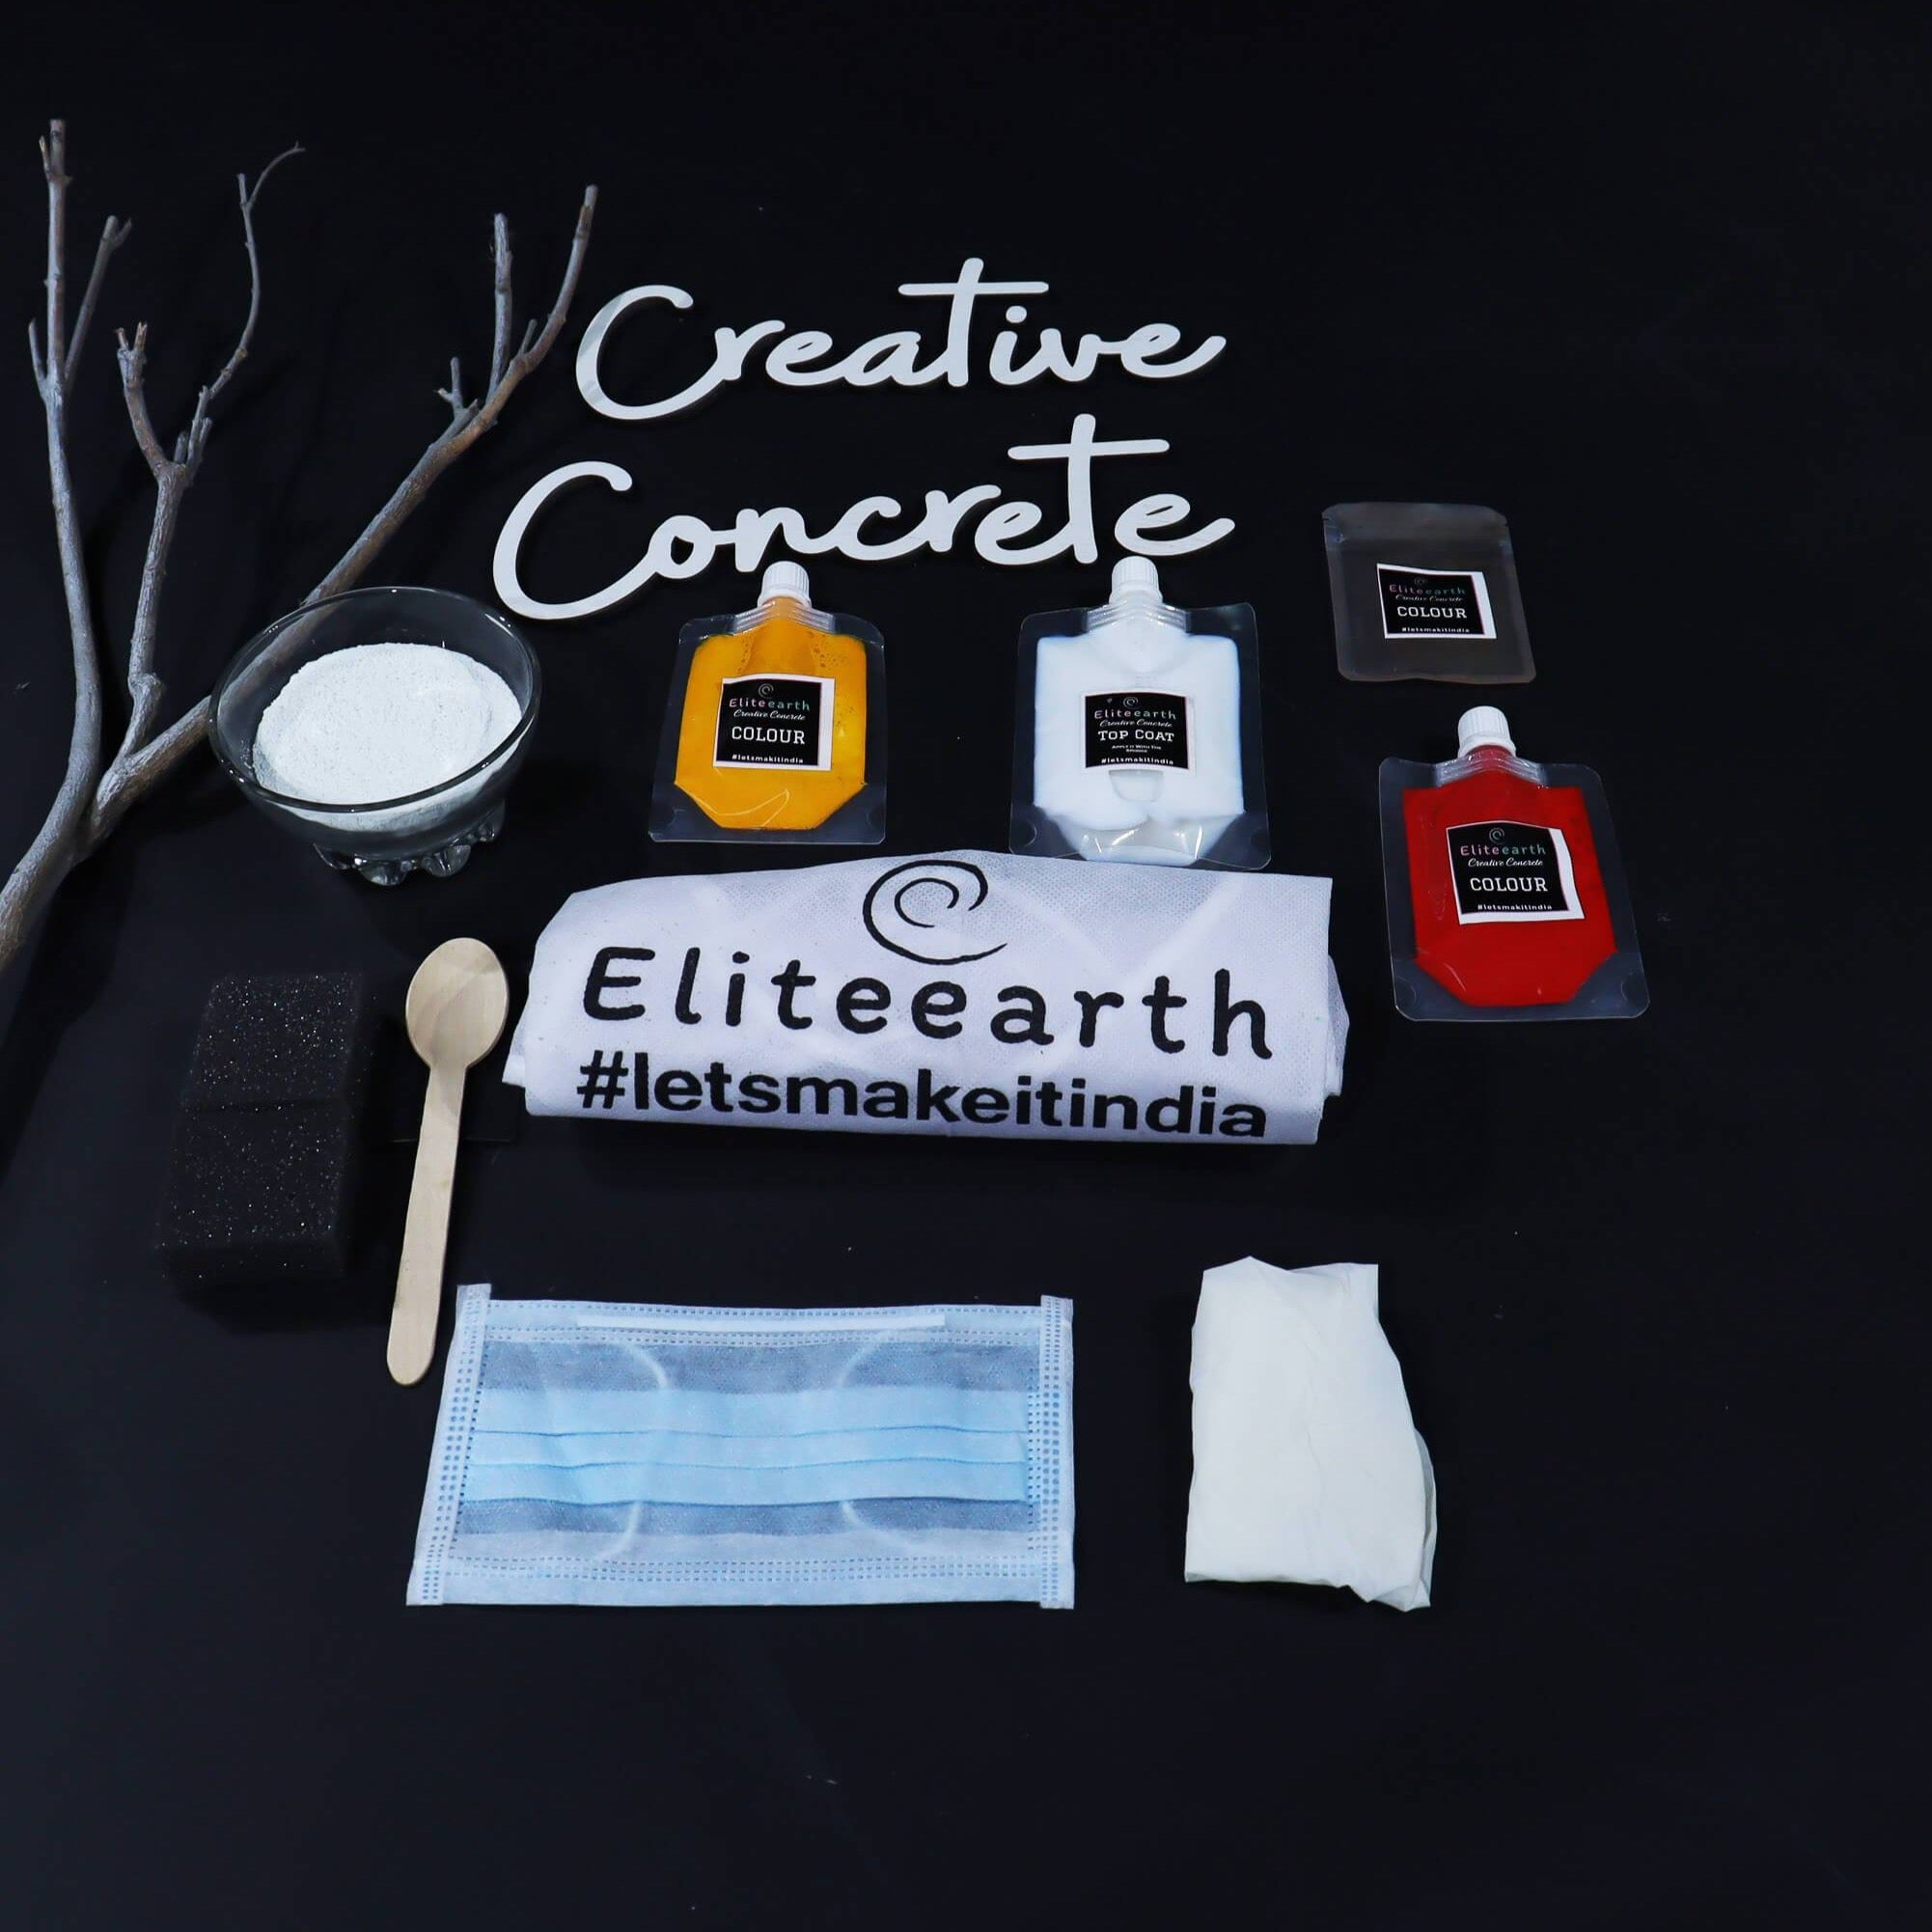 Eliteearth's DIY Creative Concrete Kit with Silicon Mold-Eliteearth